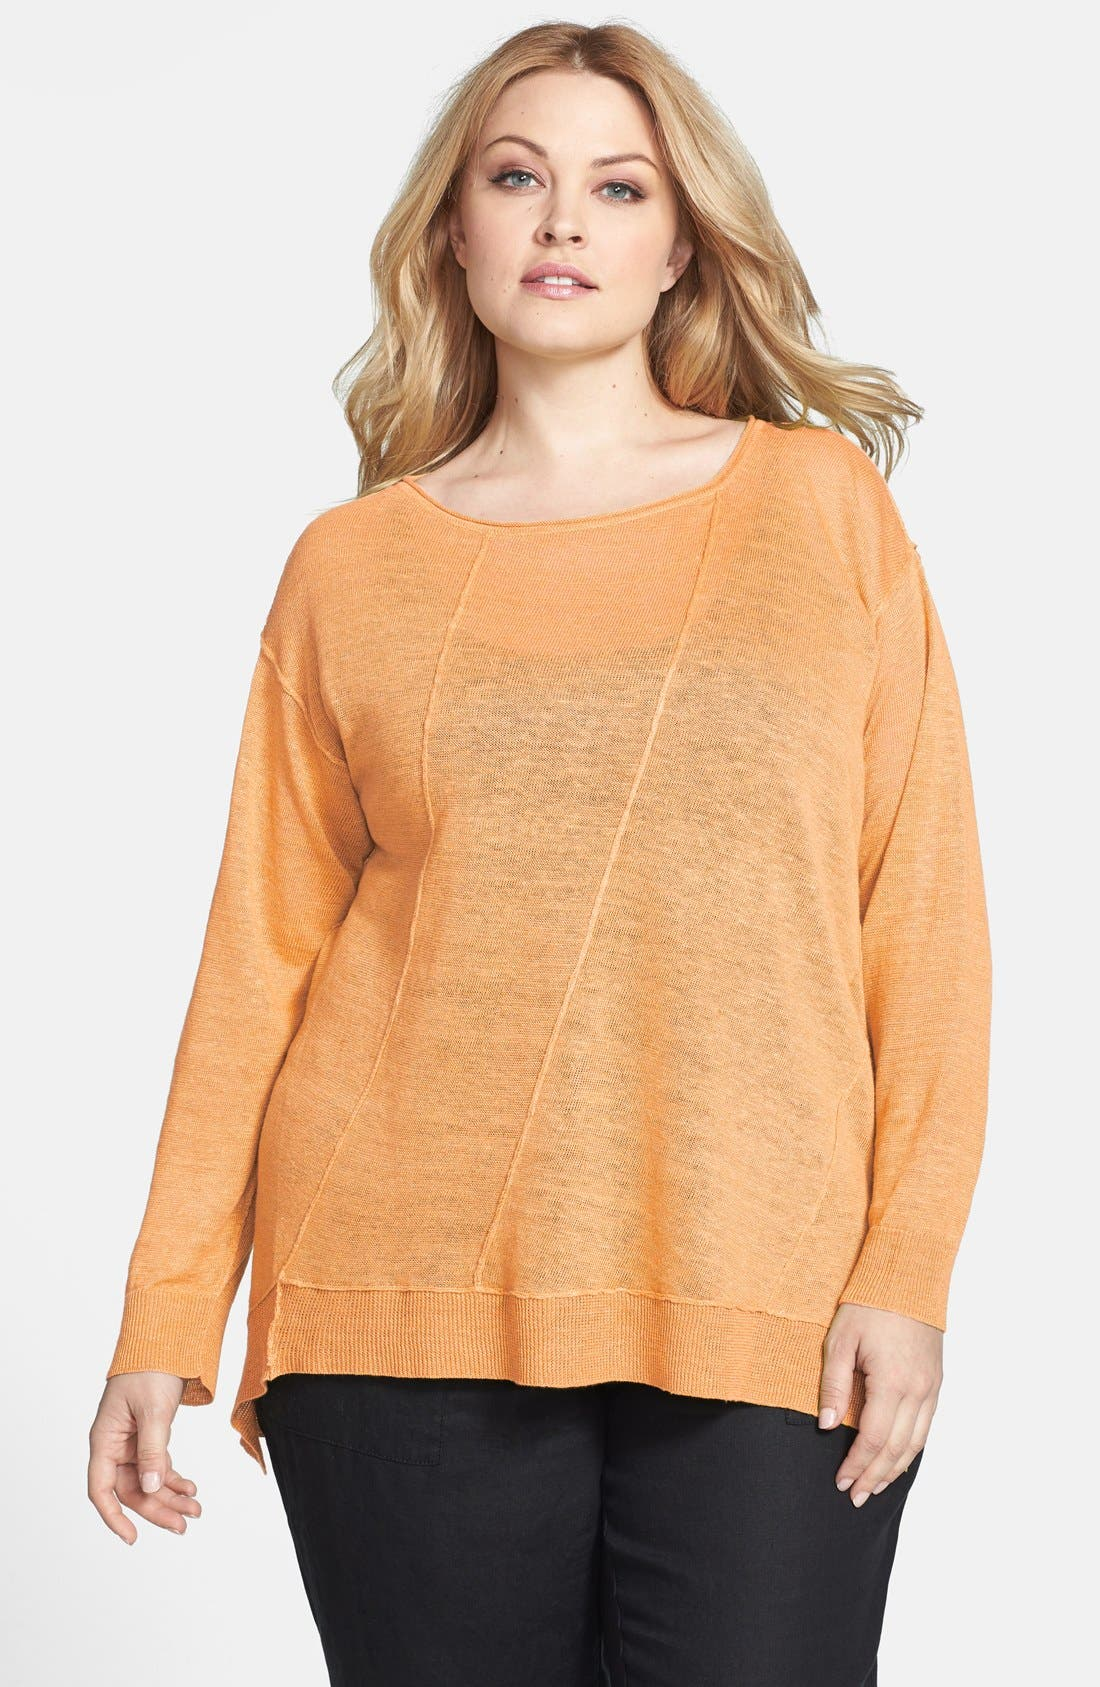 Main Image - Eileen Fisher Organic Linen Boat Neck Top (Plus Size)